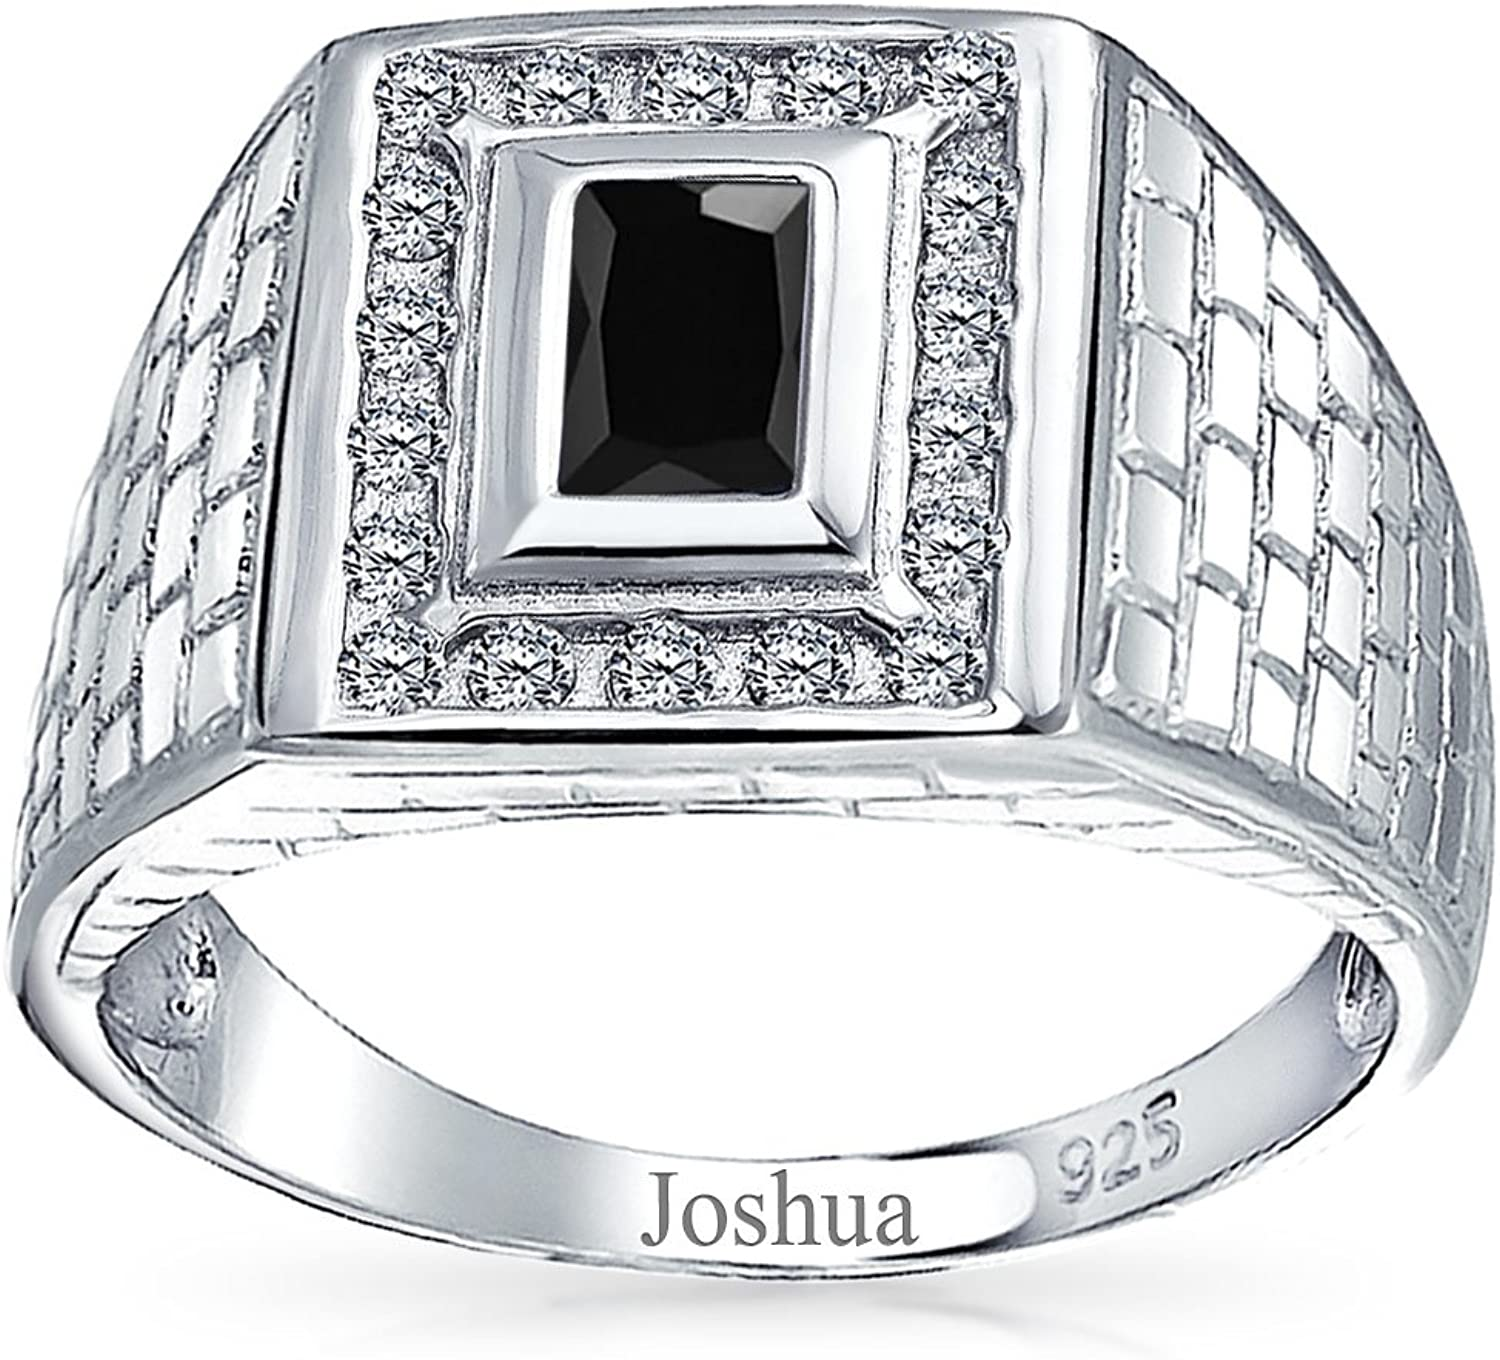 Stainless Steel Geometric Rectangle Cocktail Ring with Black Onyx